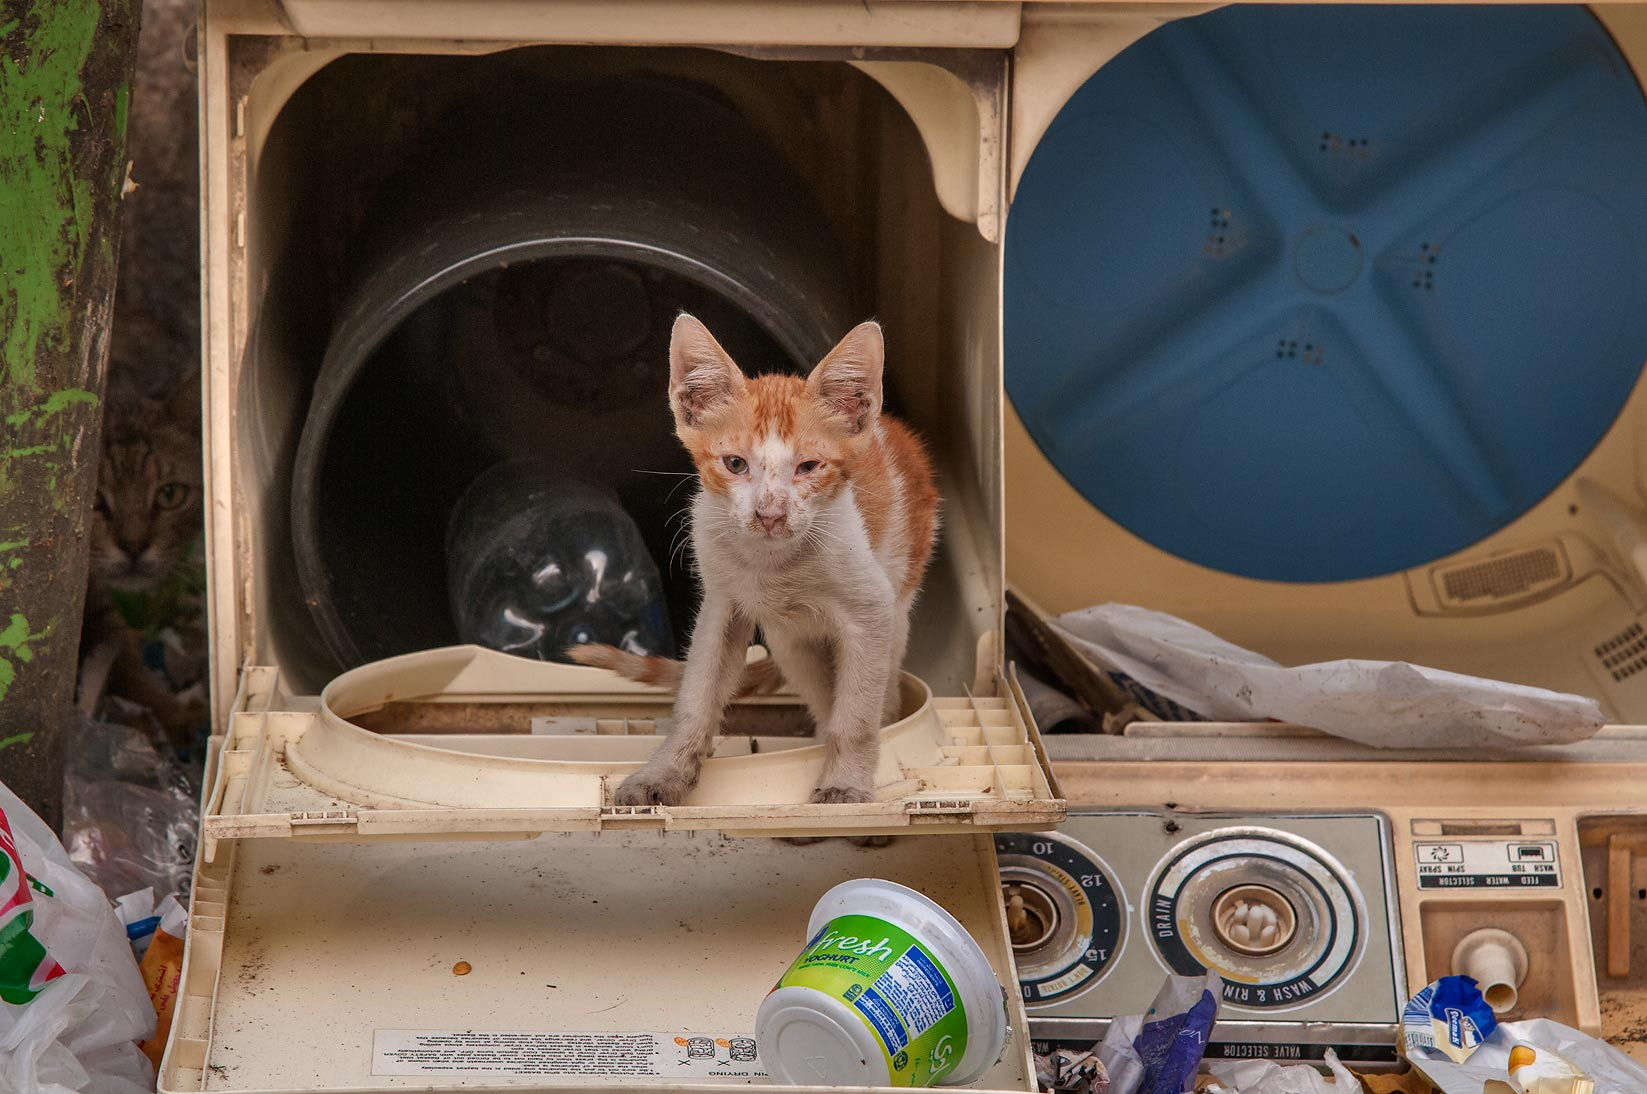 Kitten living in a disposed washing machine at Sikkat Al Hanan, Najma area. Doha, Qatar